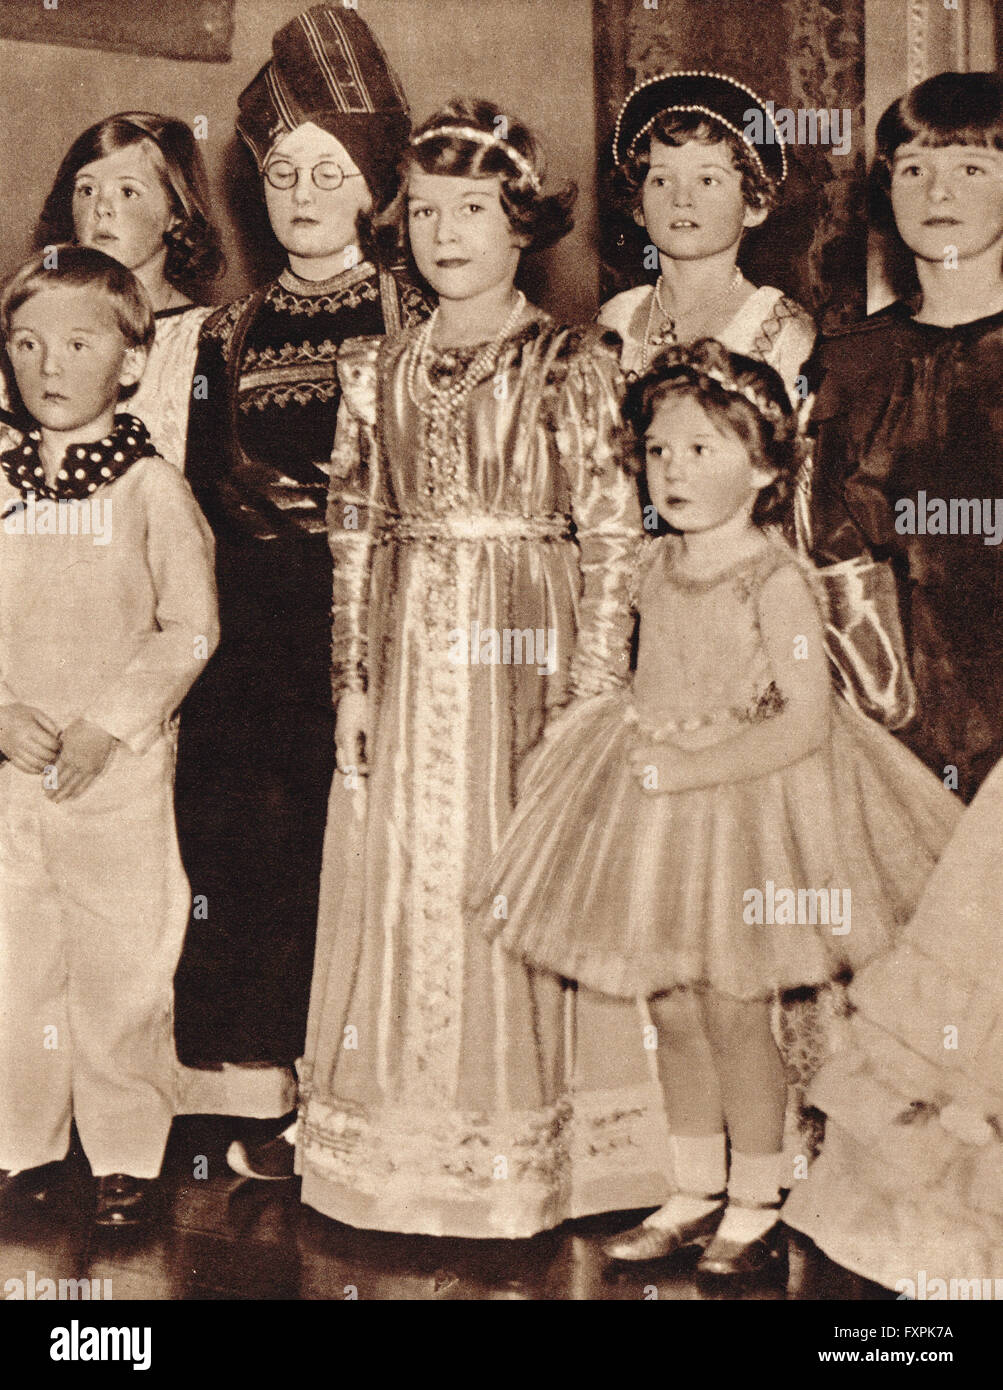 Princess Elizabeth, the future Queen Elizabeth II, at a fancy dress party with her sister Margaret in 1934 - Stock Image